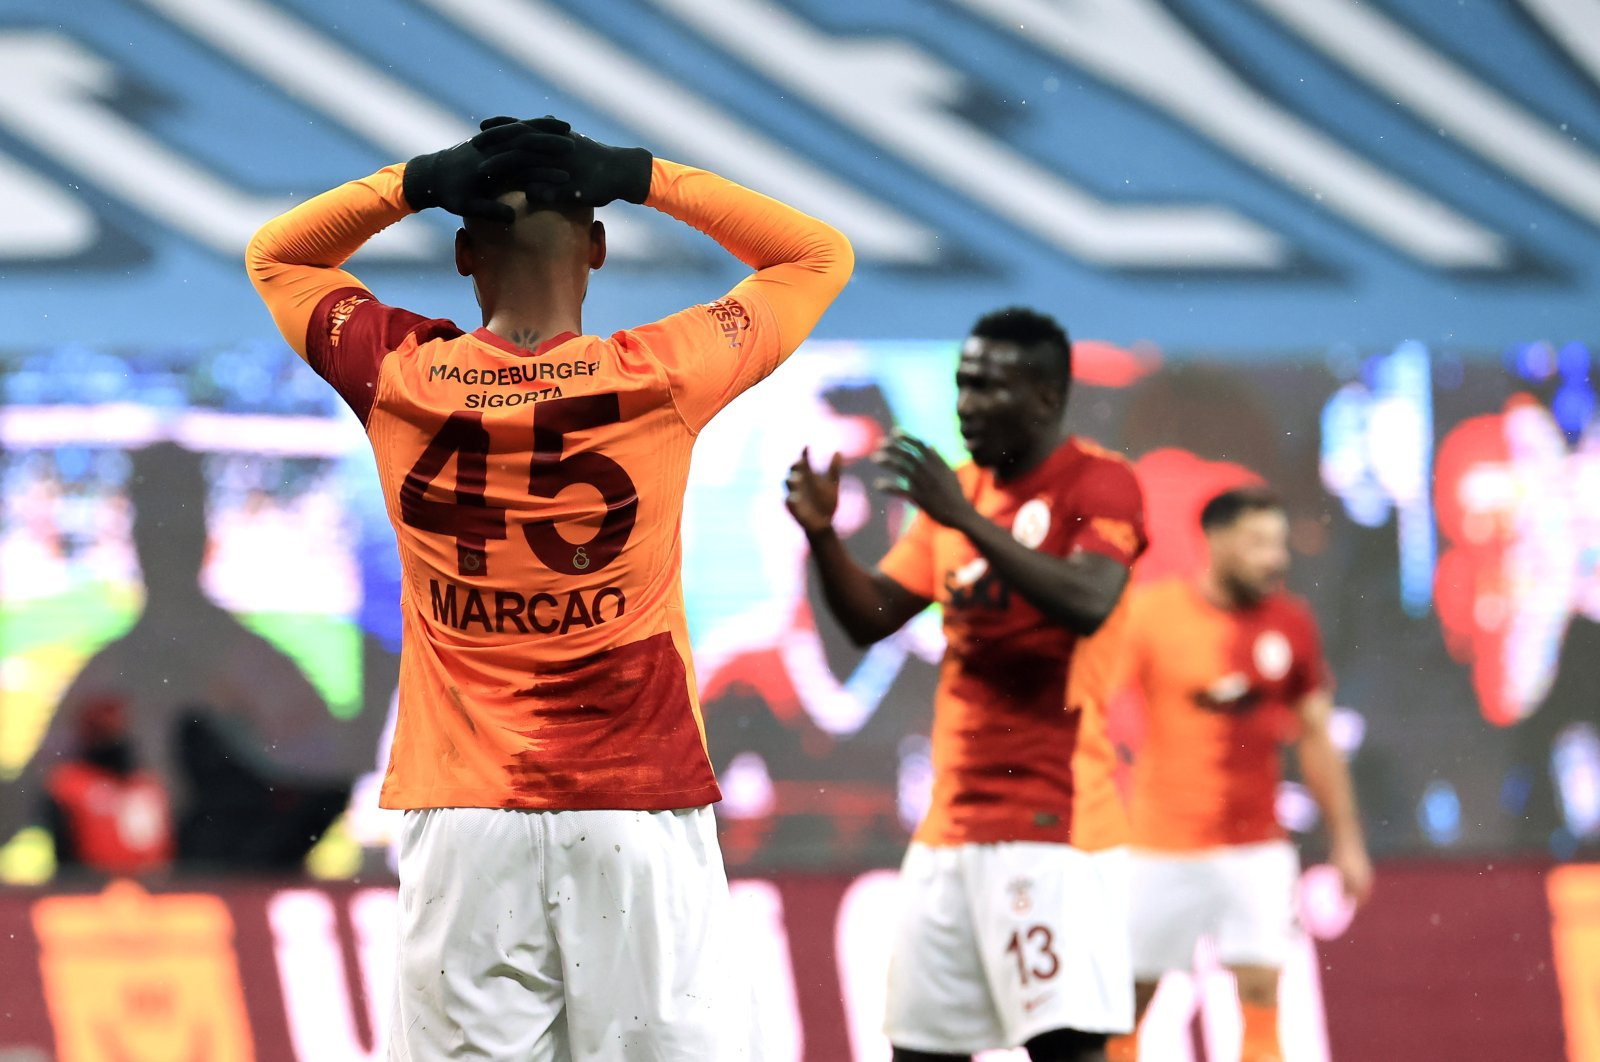 Galarasaray players look dejected after a Süper Lig match against Beşiktaş at the Vodafone Park stadium, in Istanbul, Turkey, Jan. 17, 2021. (AA Photo)